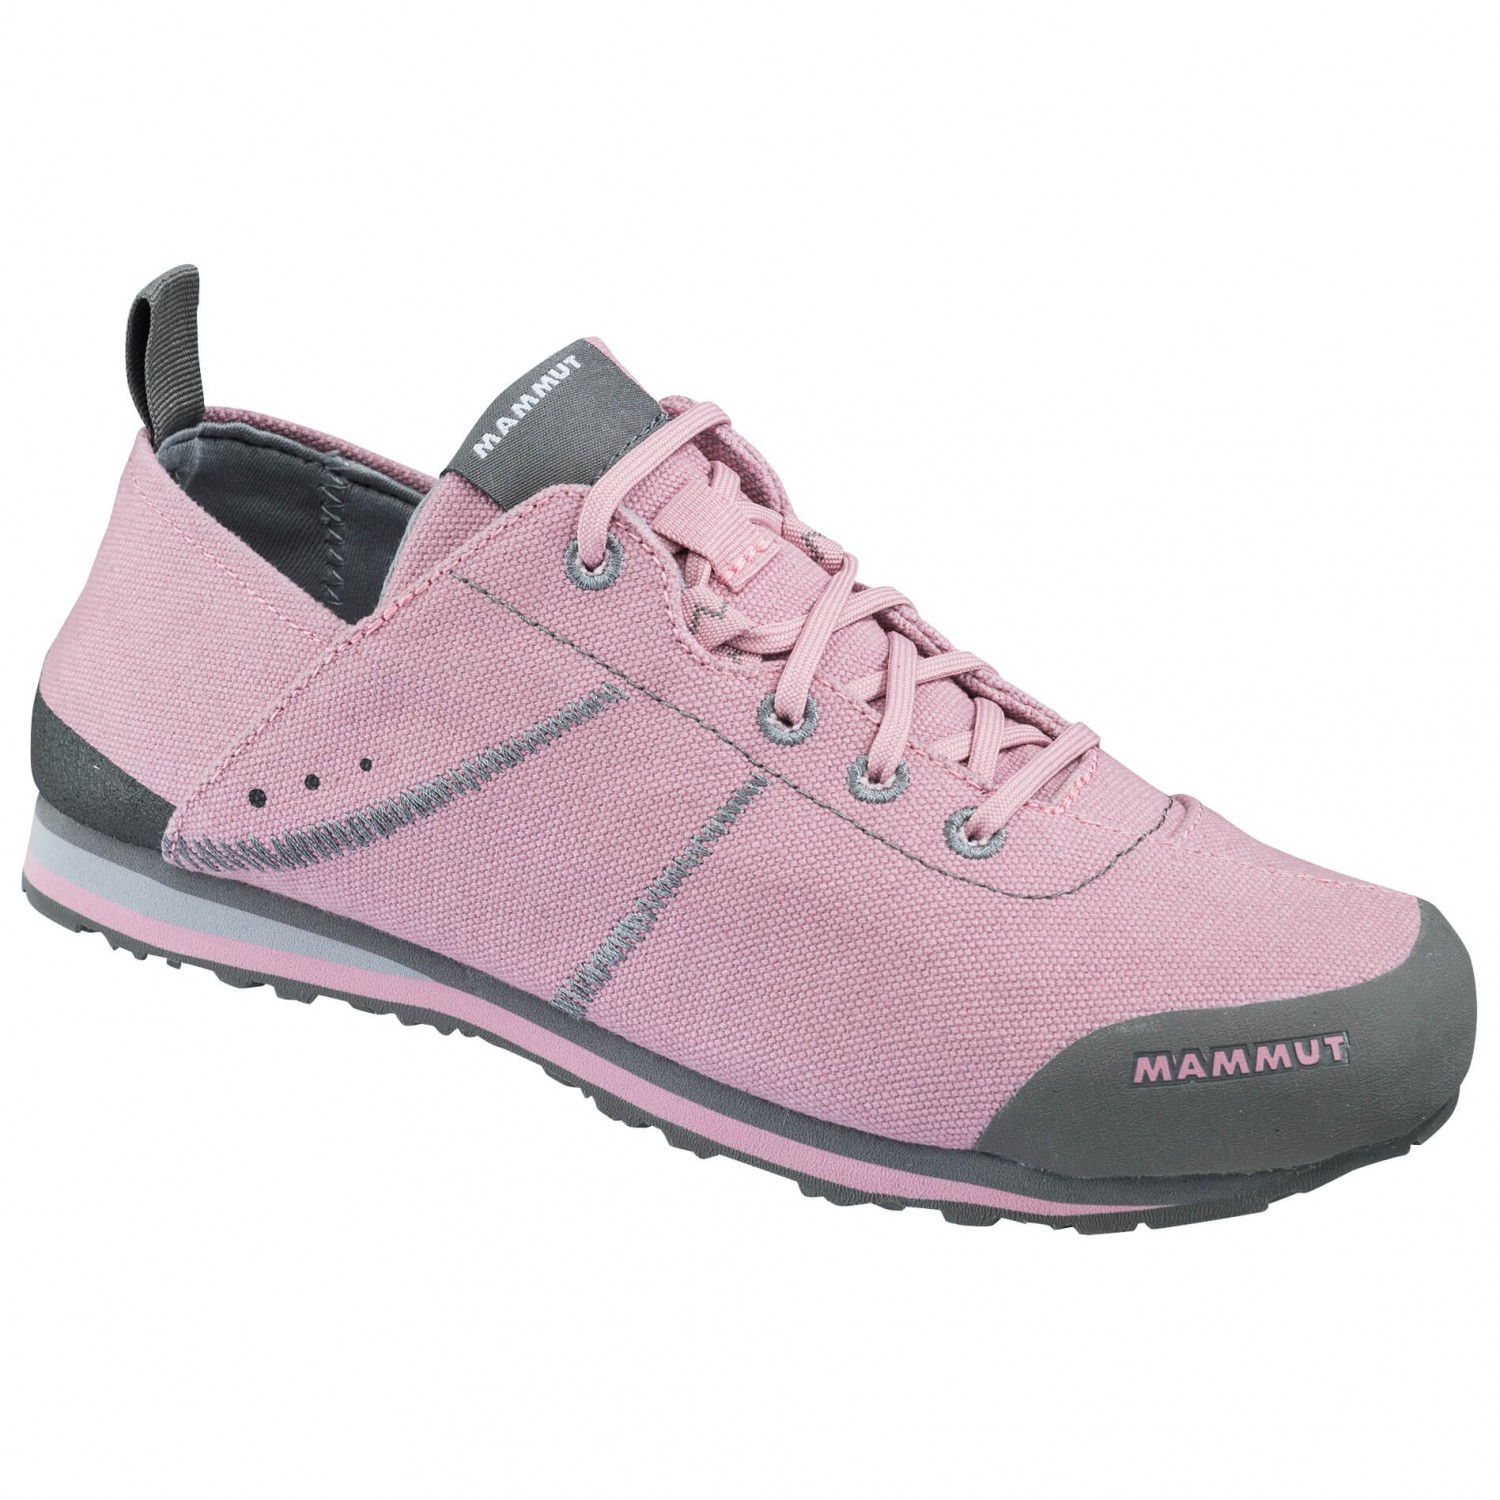 Mammut - Women's Sloper Low Canvas - Sneaker Rose / Ash